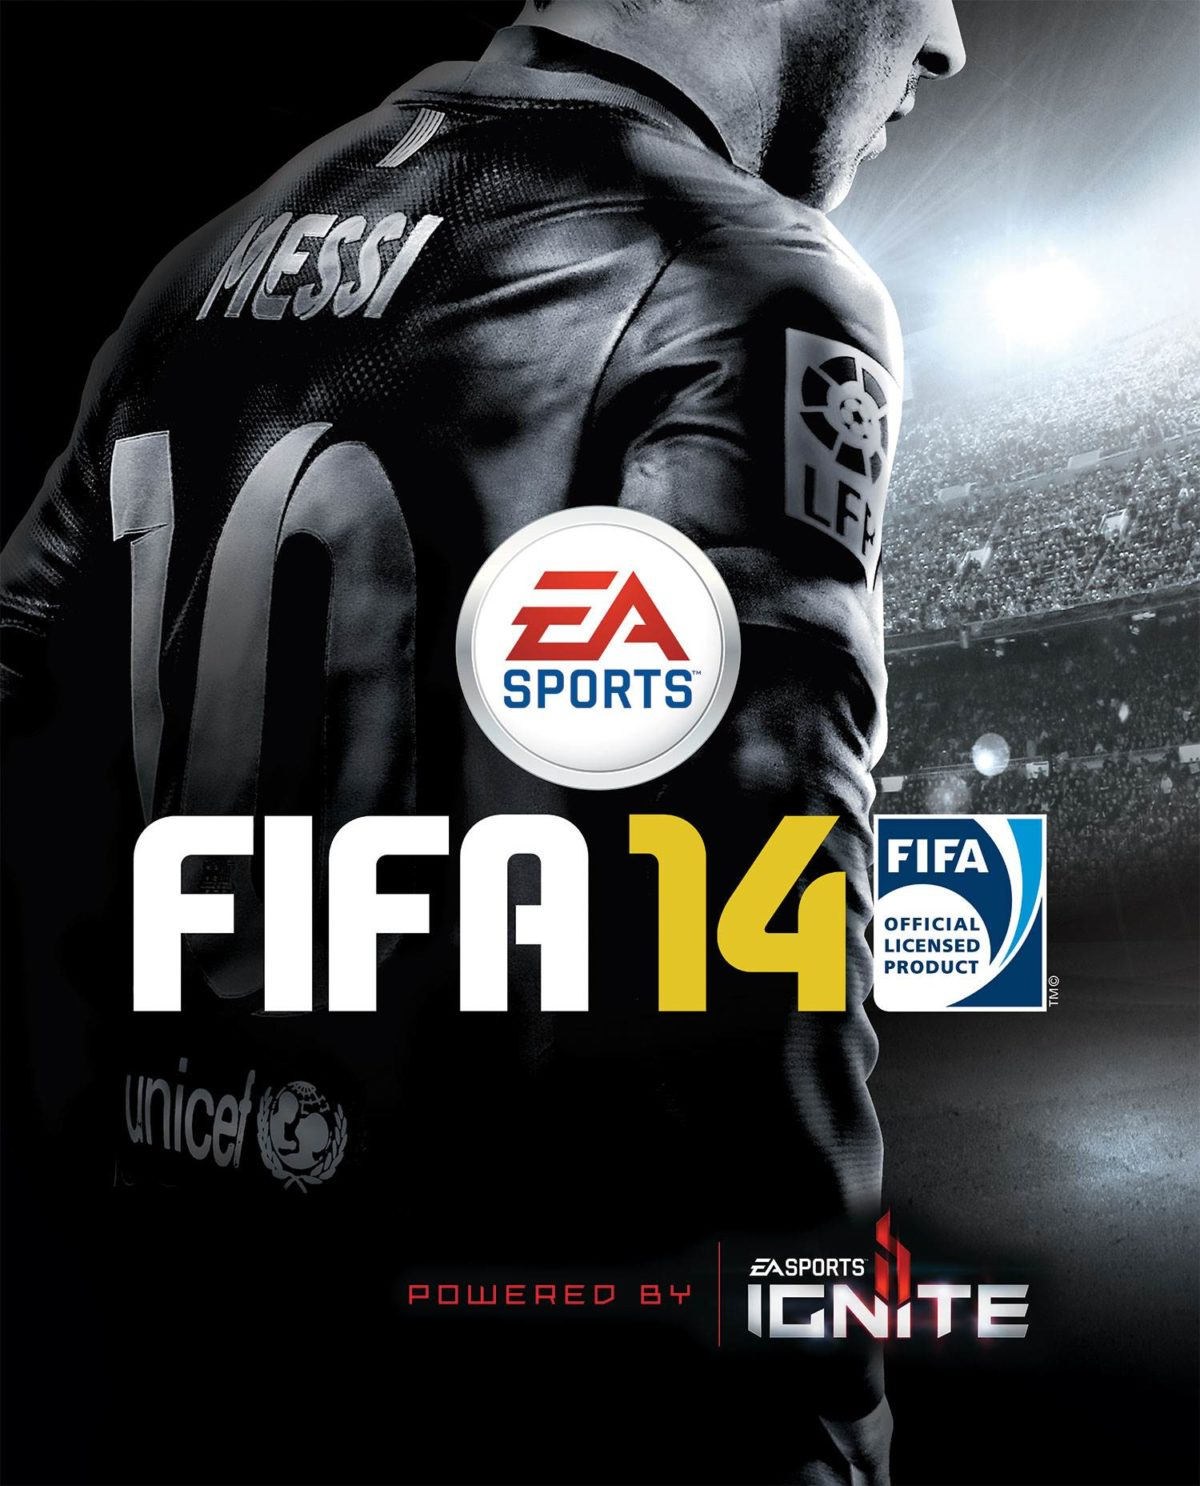 FIFA 14 WALLPAPERS IN HD « GamingBolt.com: Video Game News …